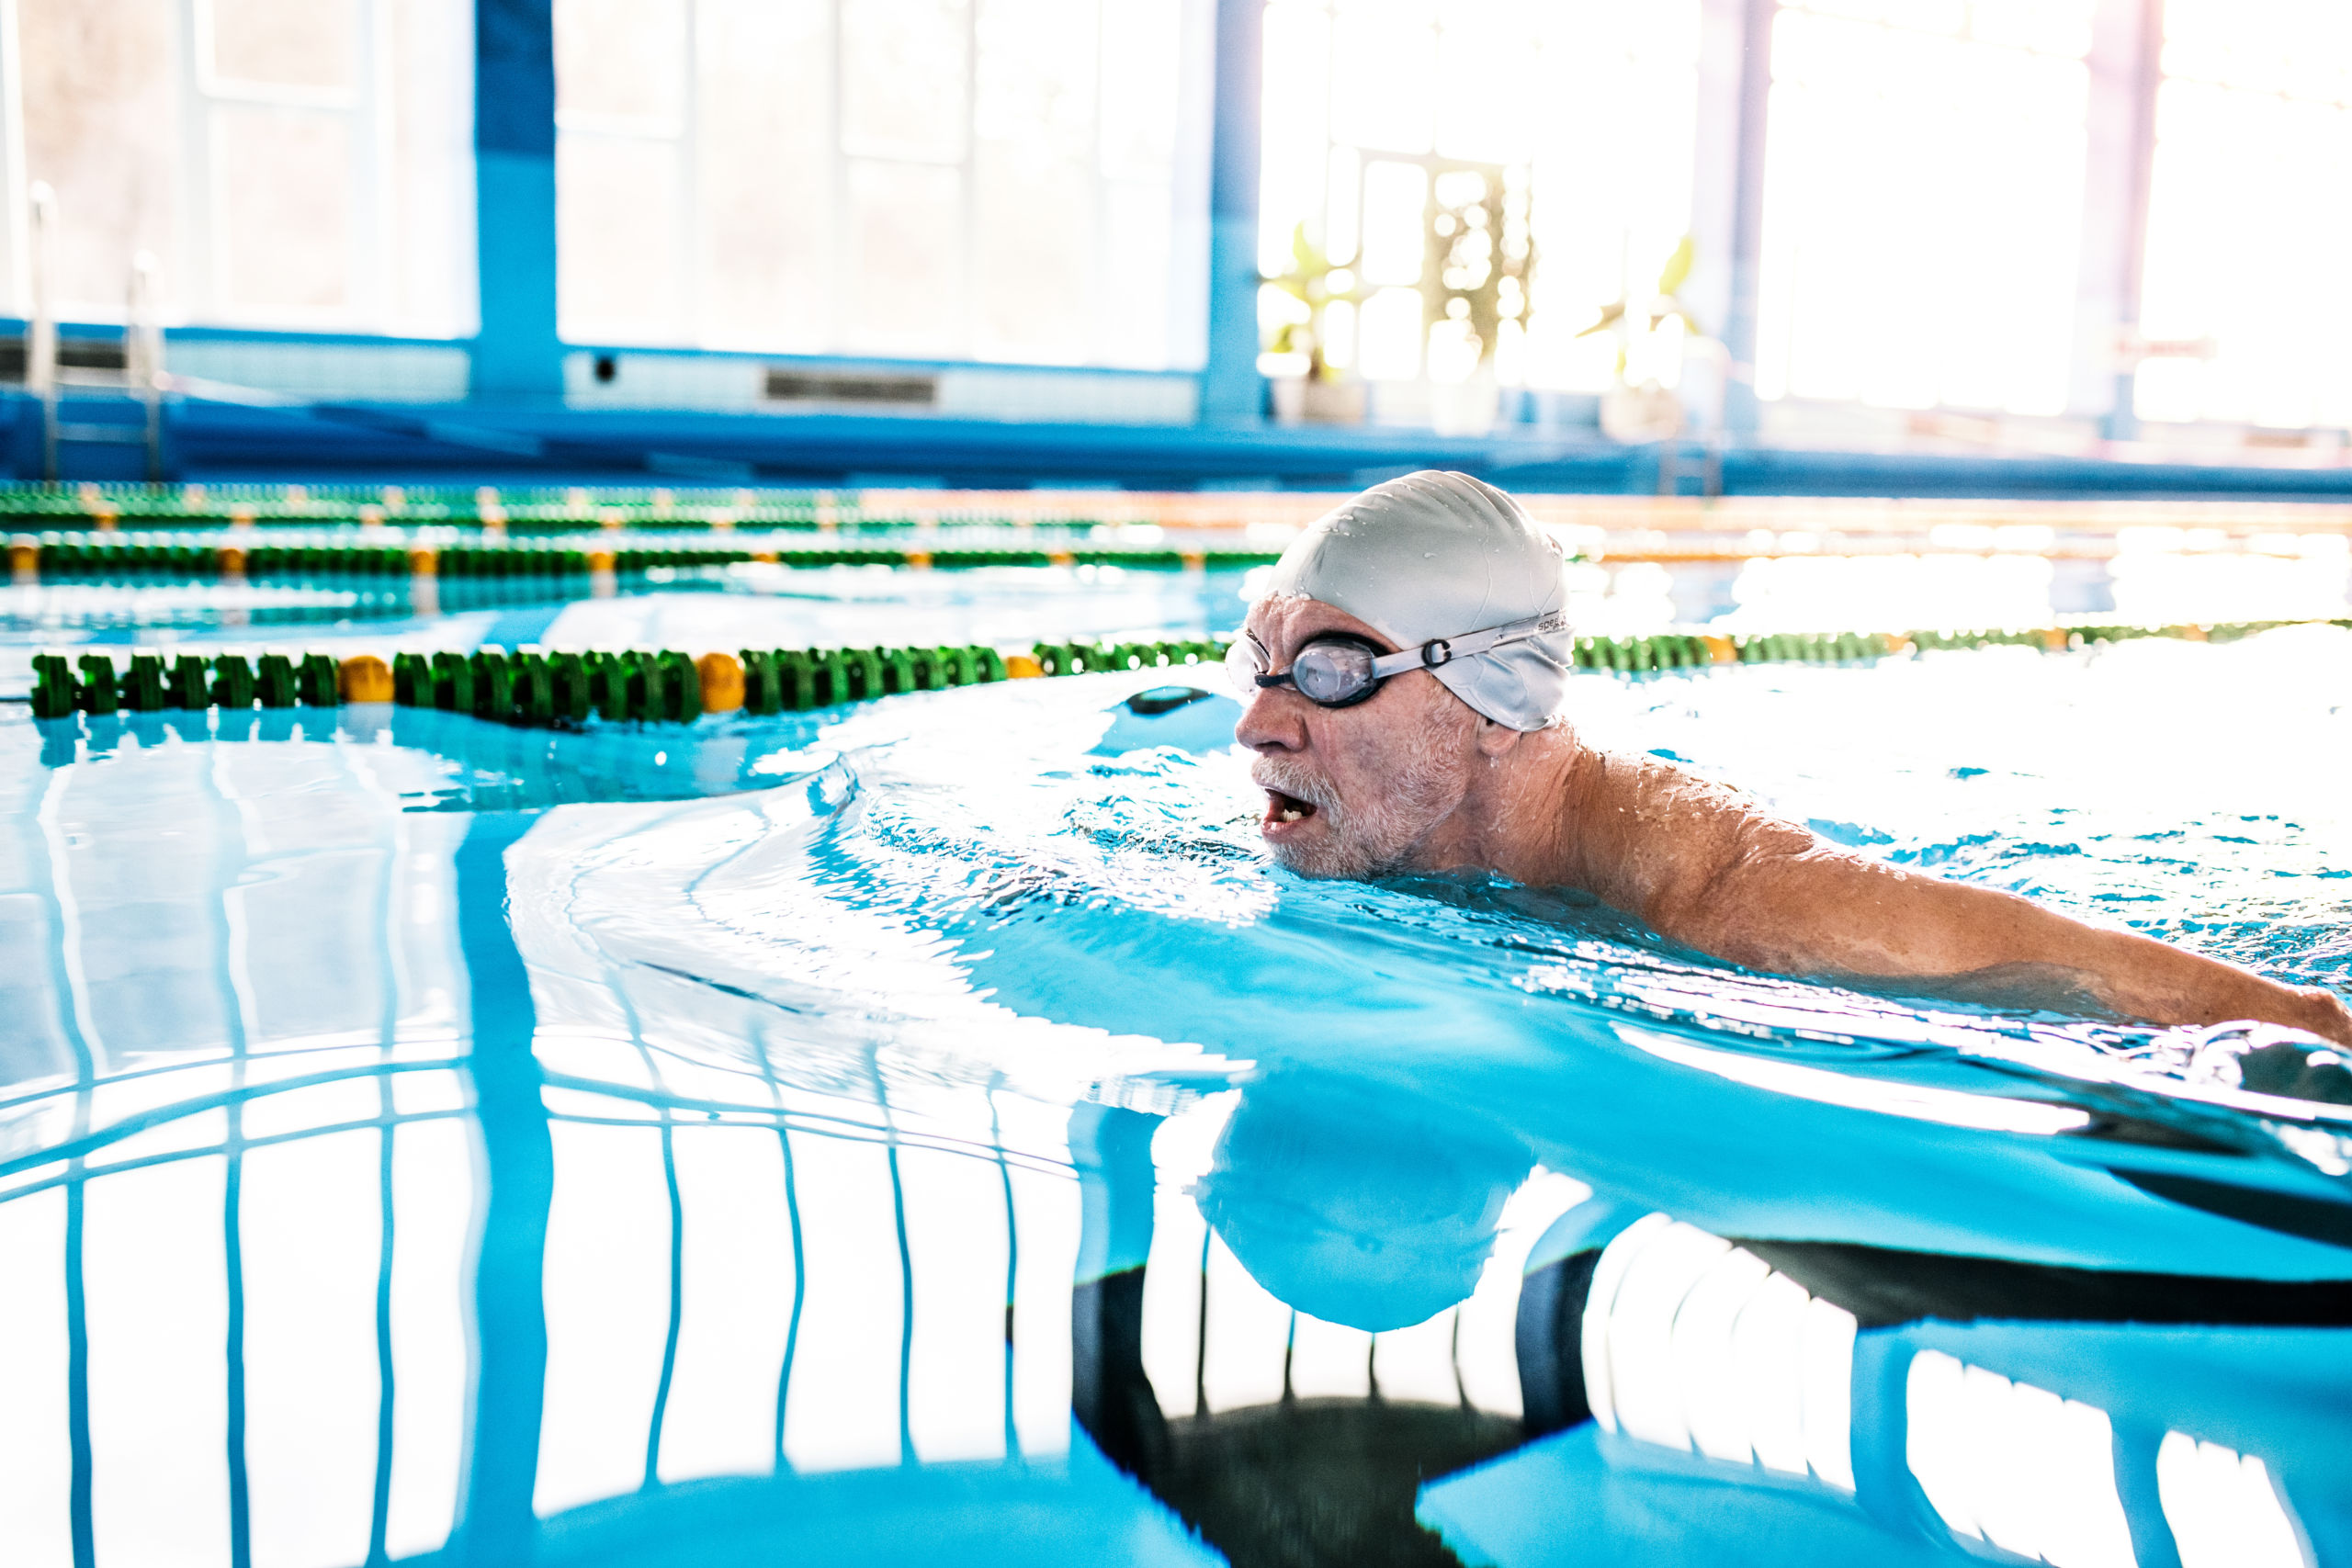 These swimming exercise tips can help you start a new aquatic exercise routine with confidence.